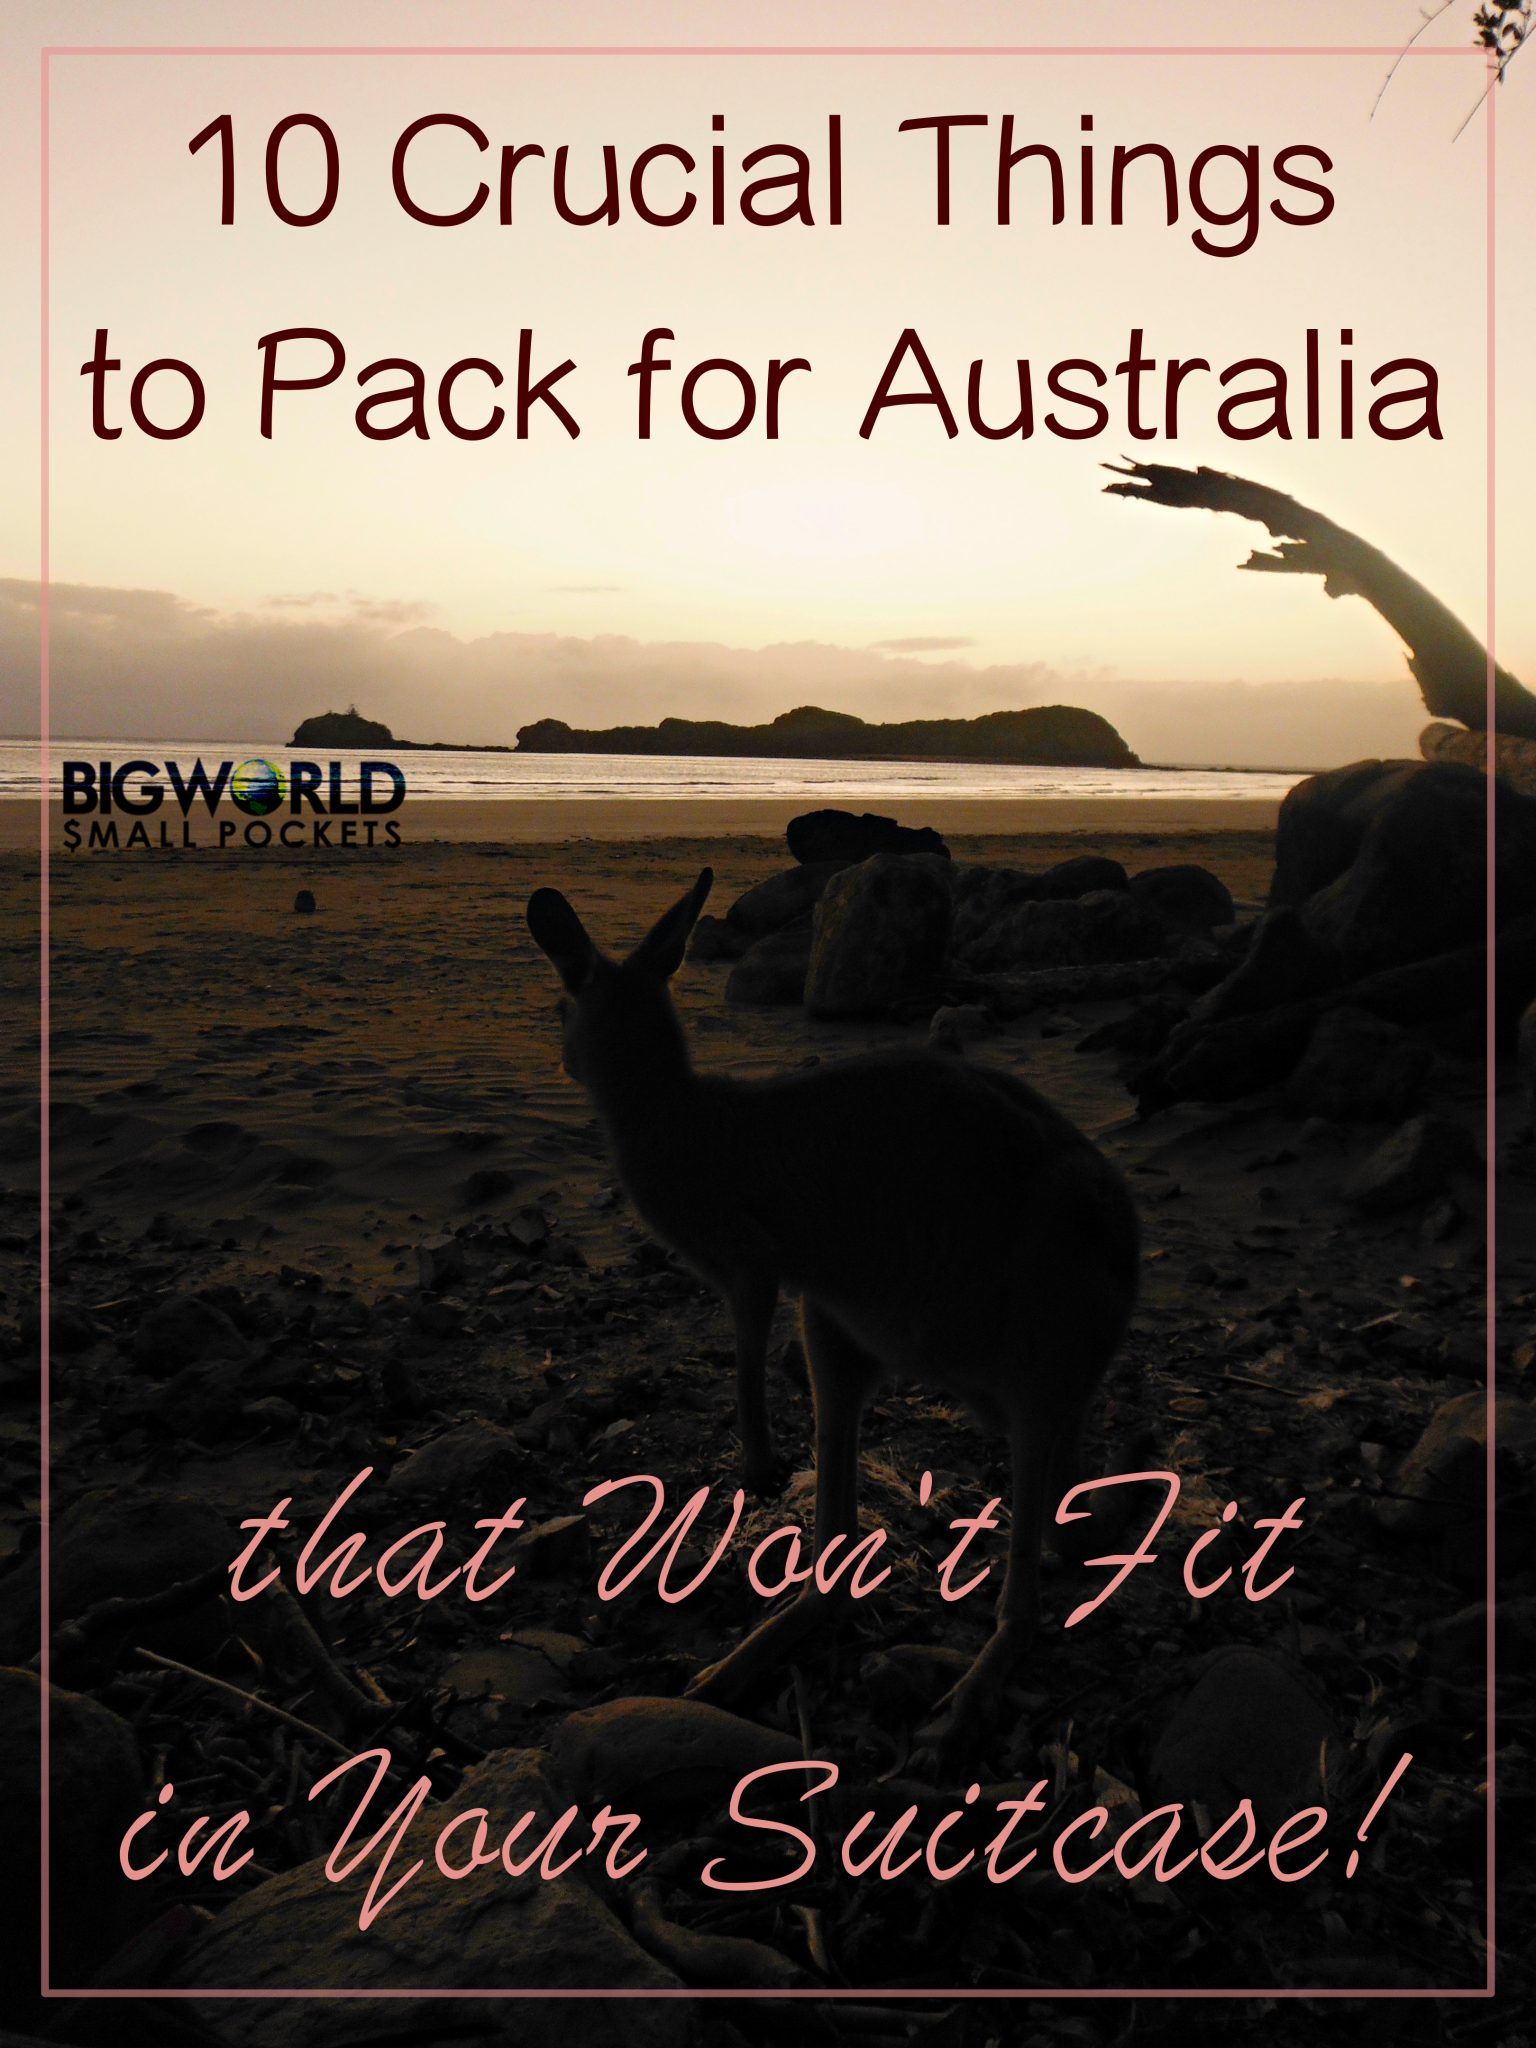 10 Crucial Things to Pack for Australia that Won't Fit in Your Suitcase {Big World Small Pockets}